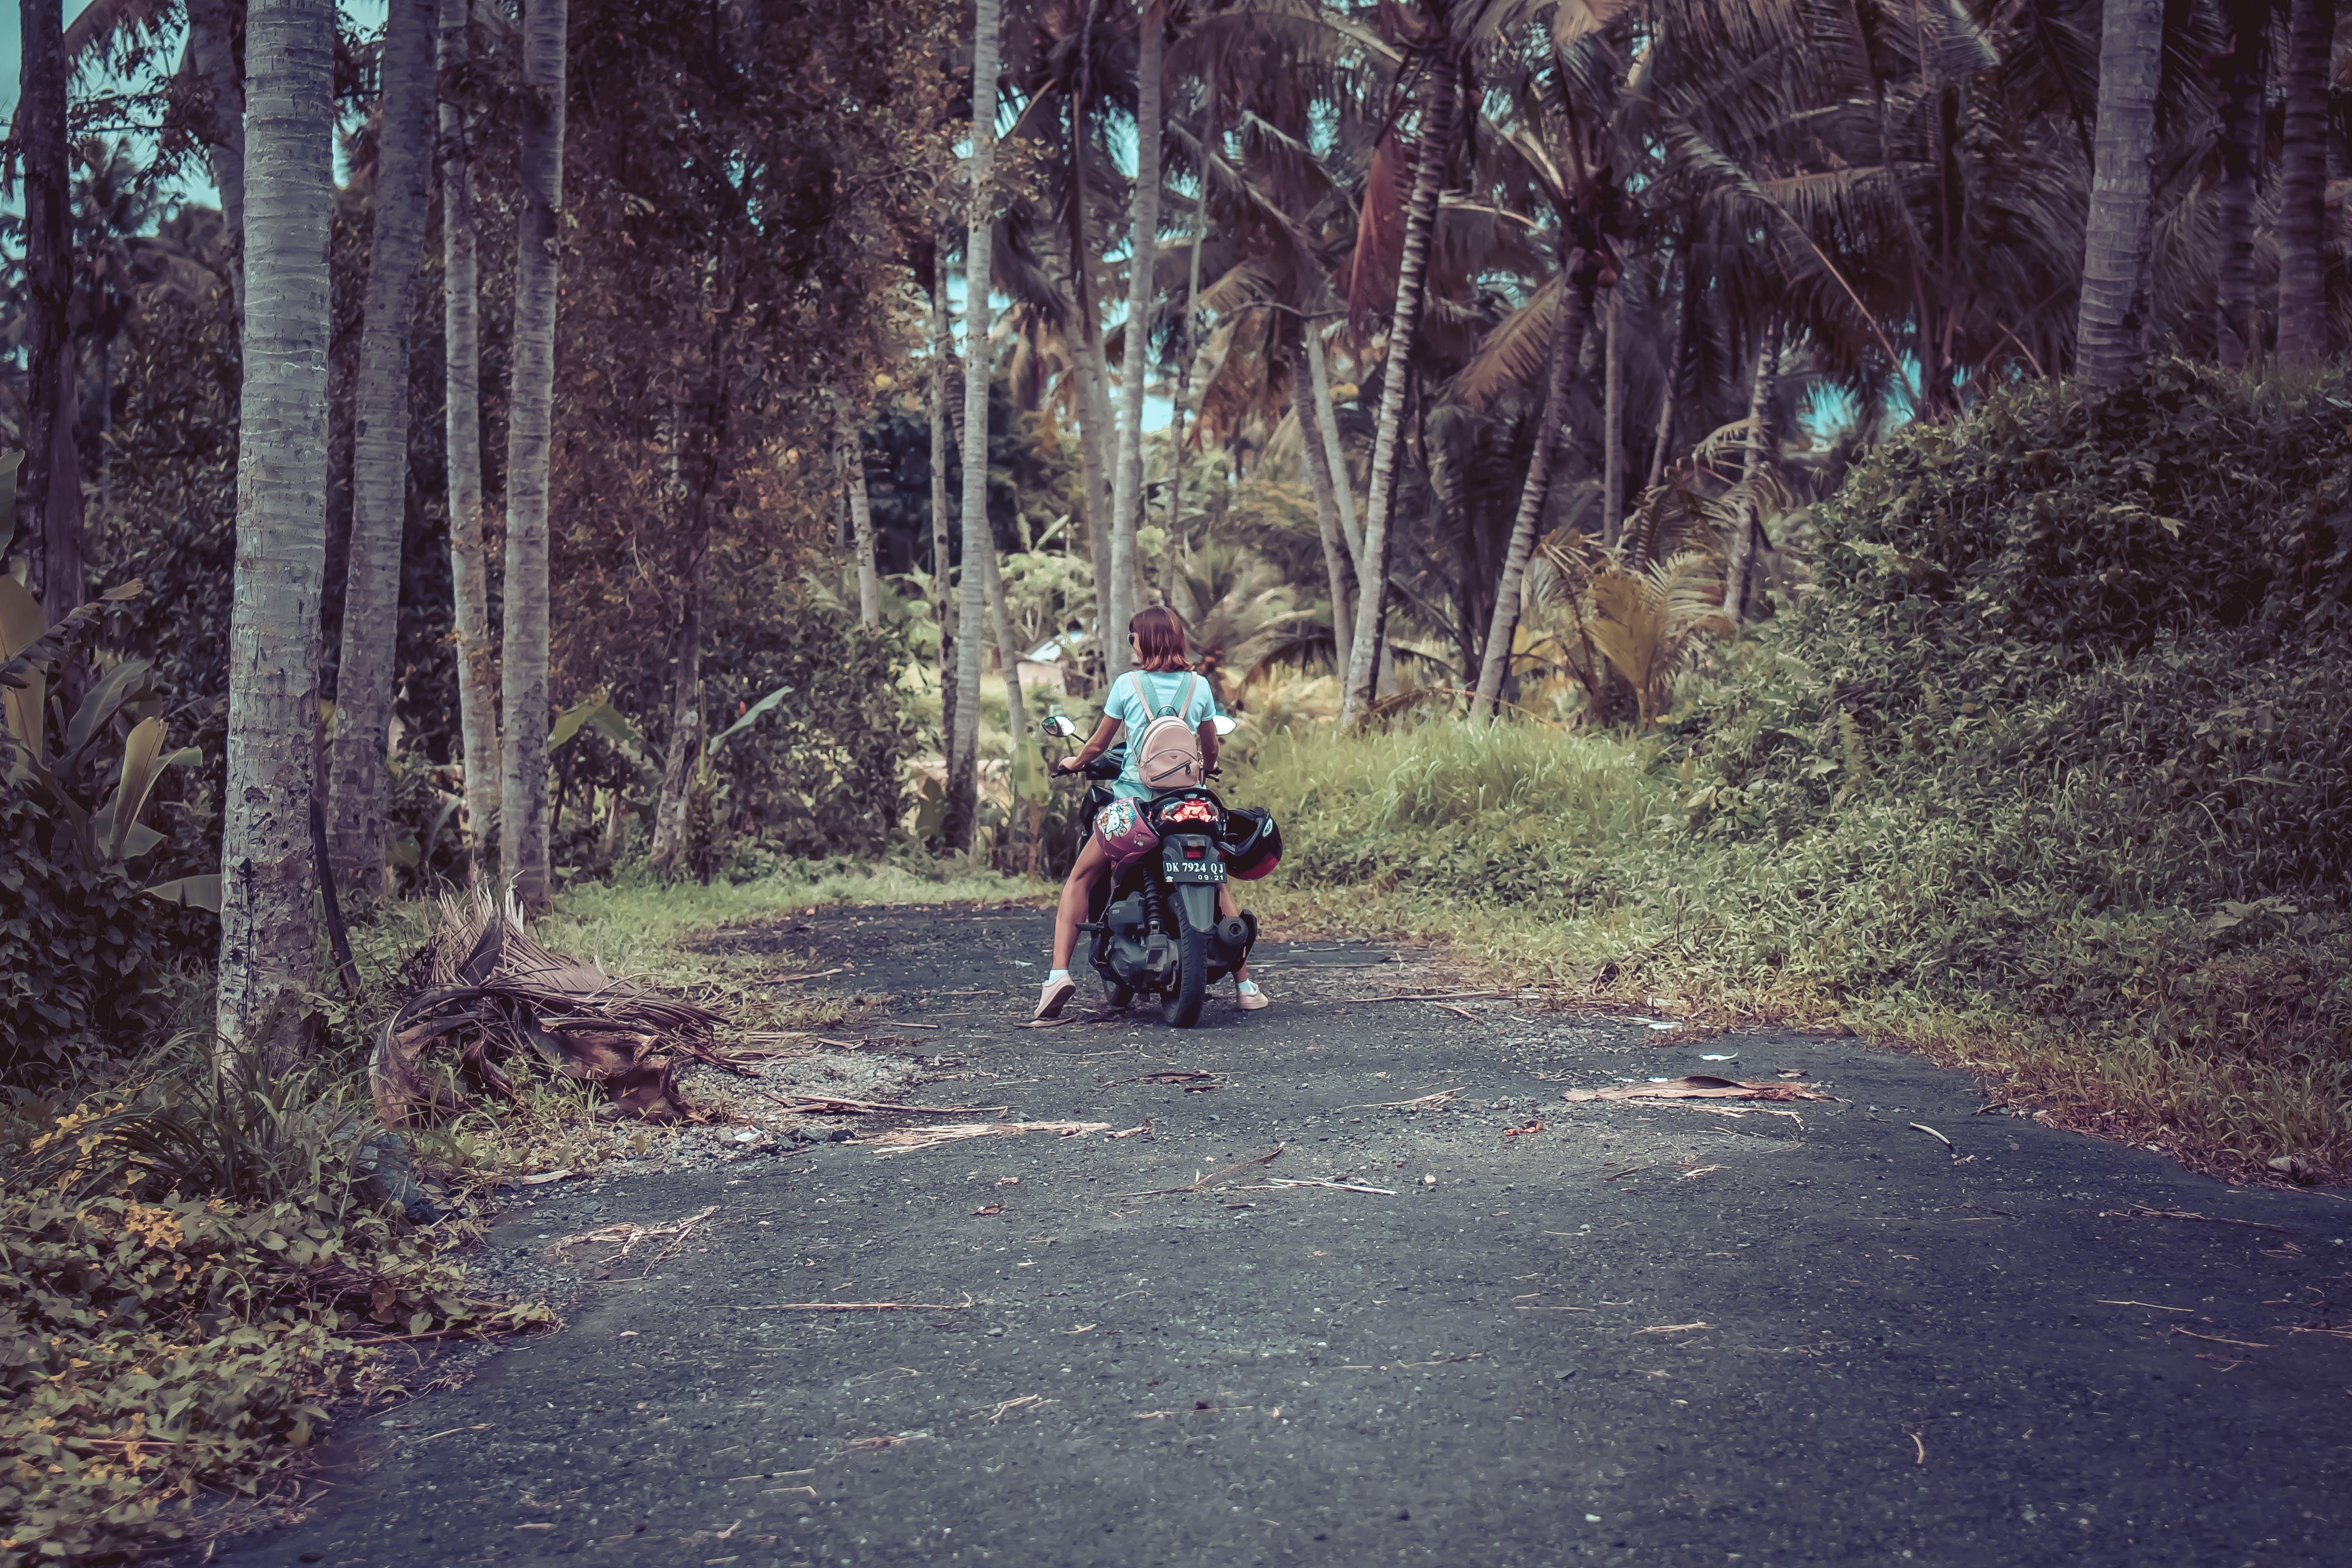 Woman Riding Motor Scooter Near Coconut Trees